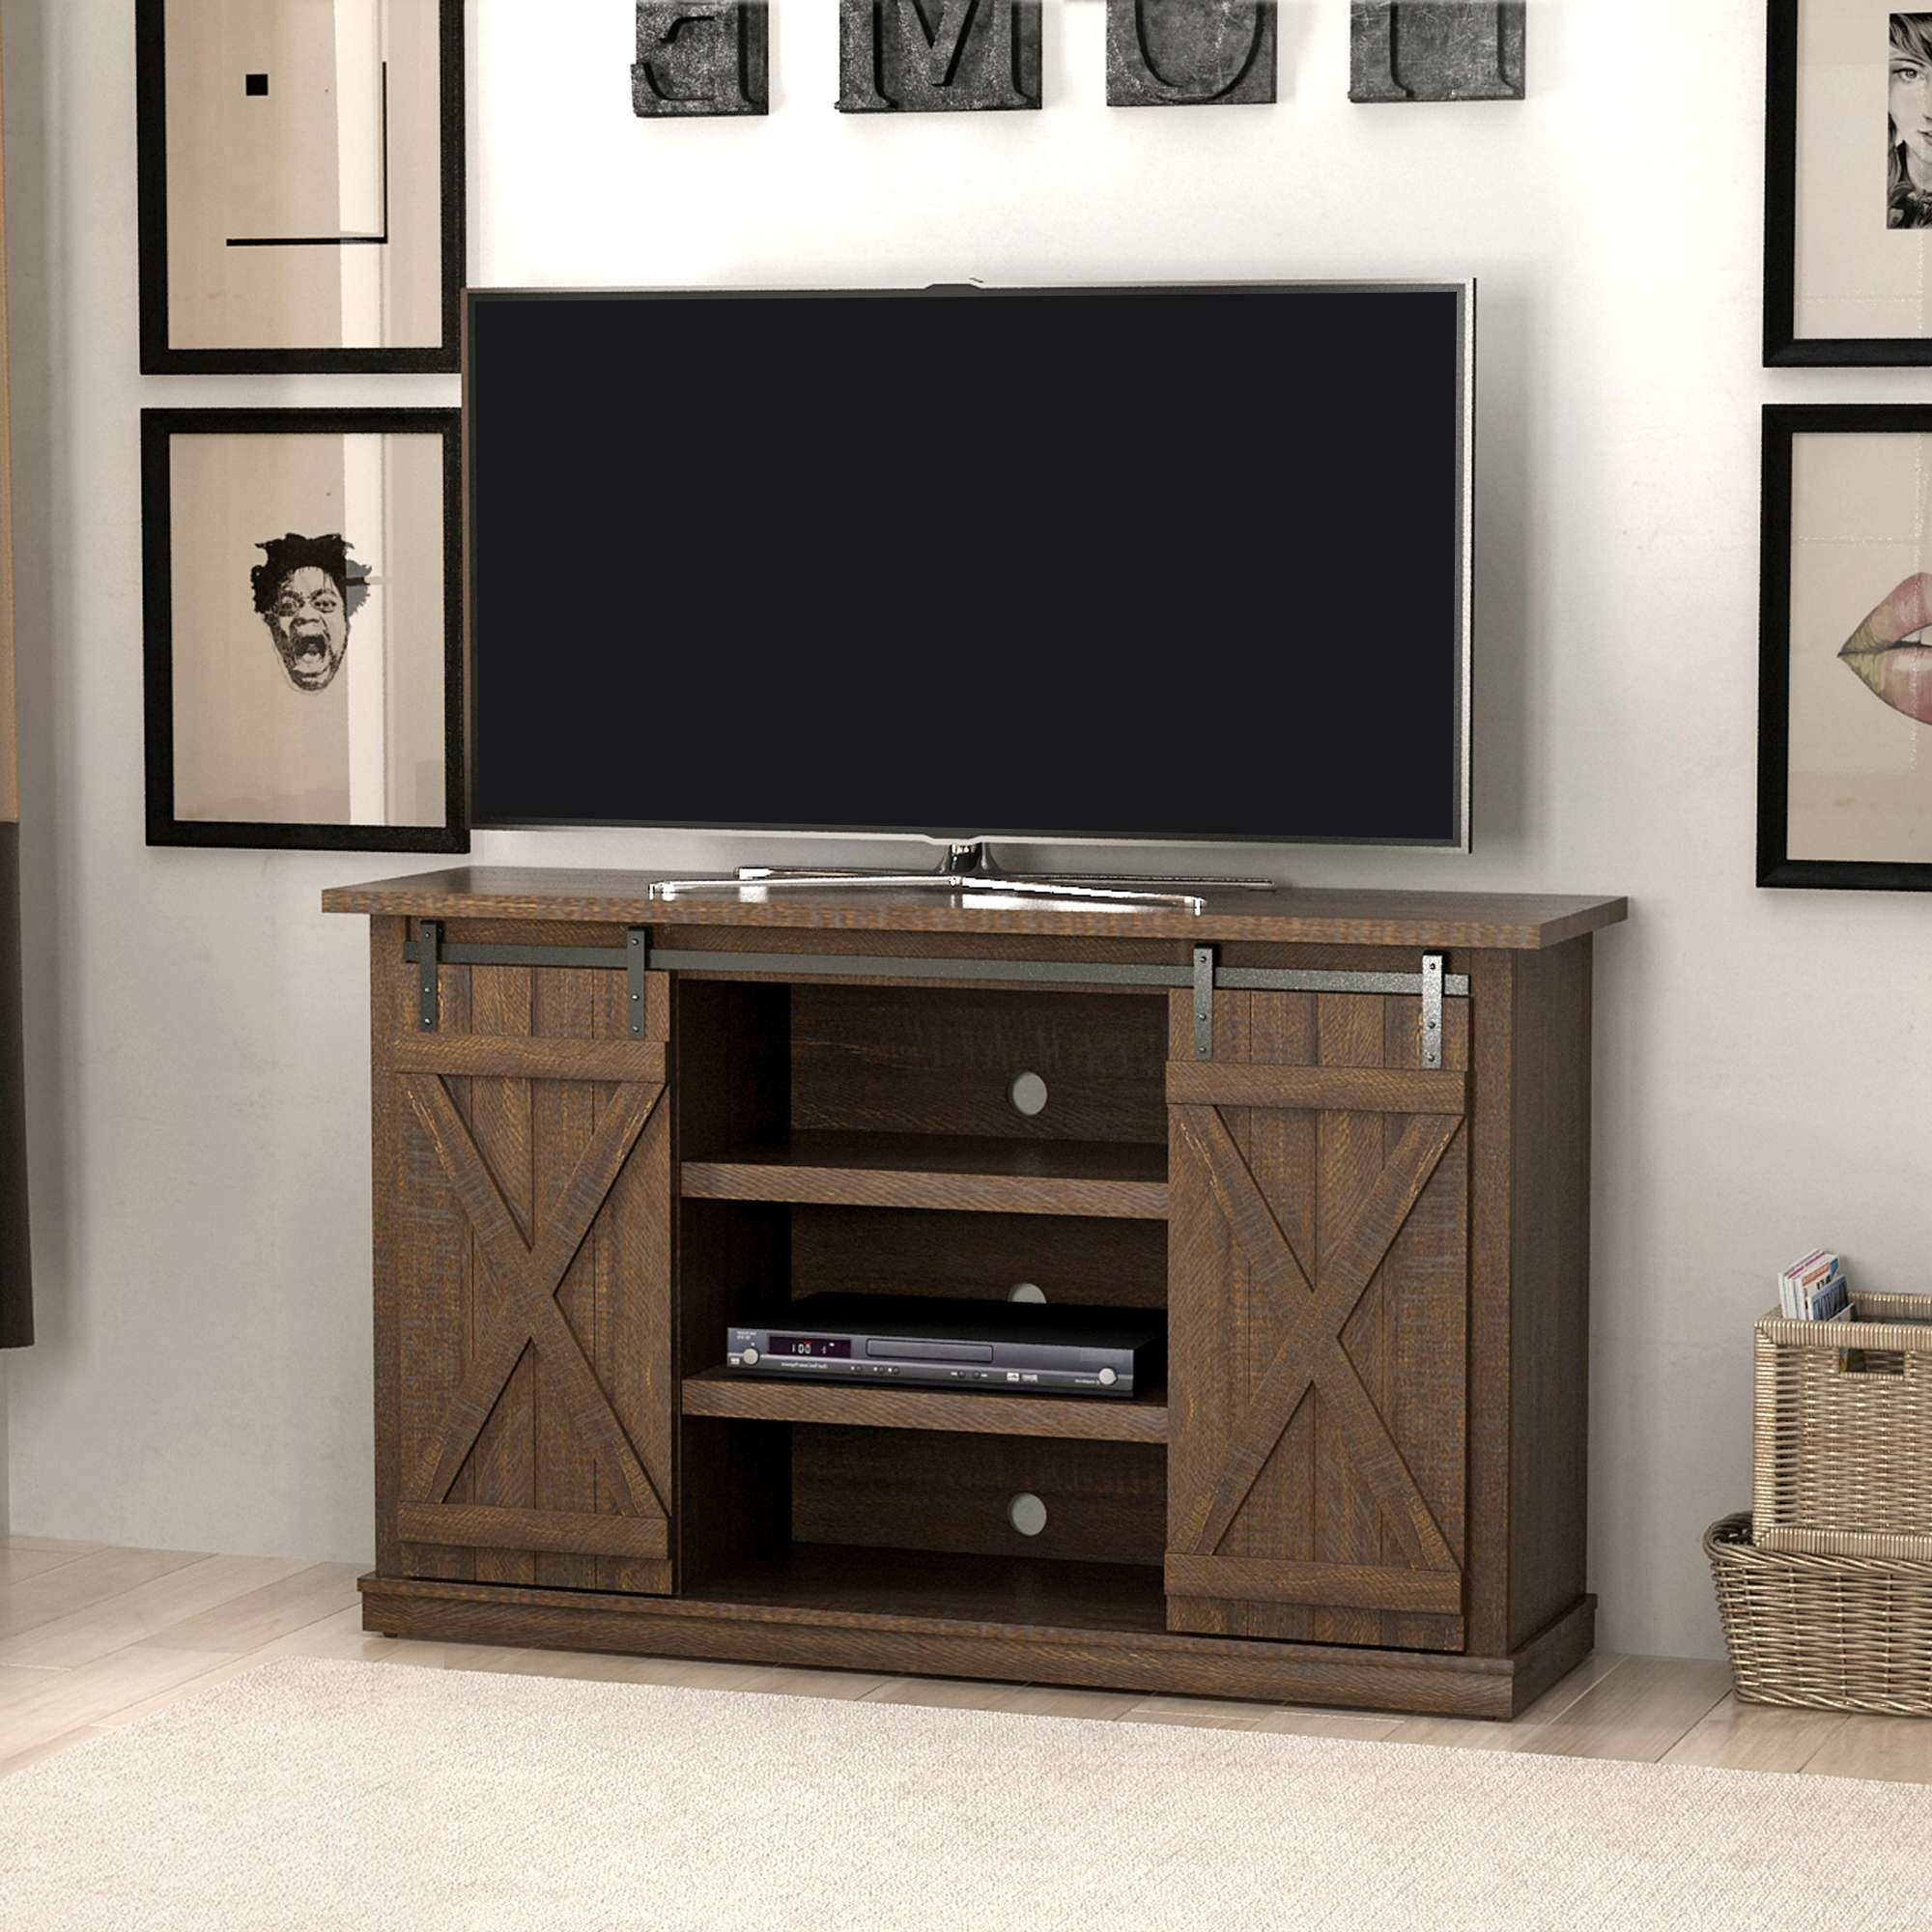 Tv Stands – Walmart With Modern Tv Stands For 60 Inch Tvs (View 9 of 15)